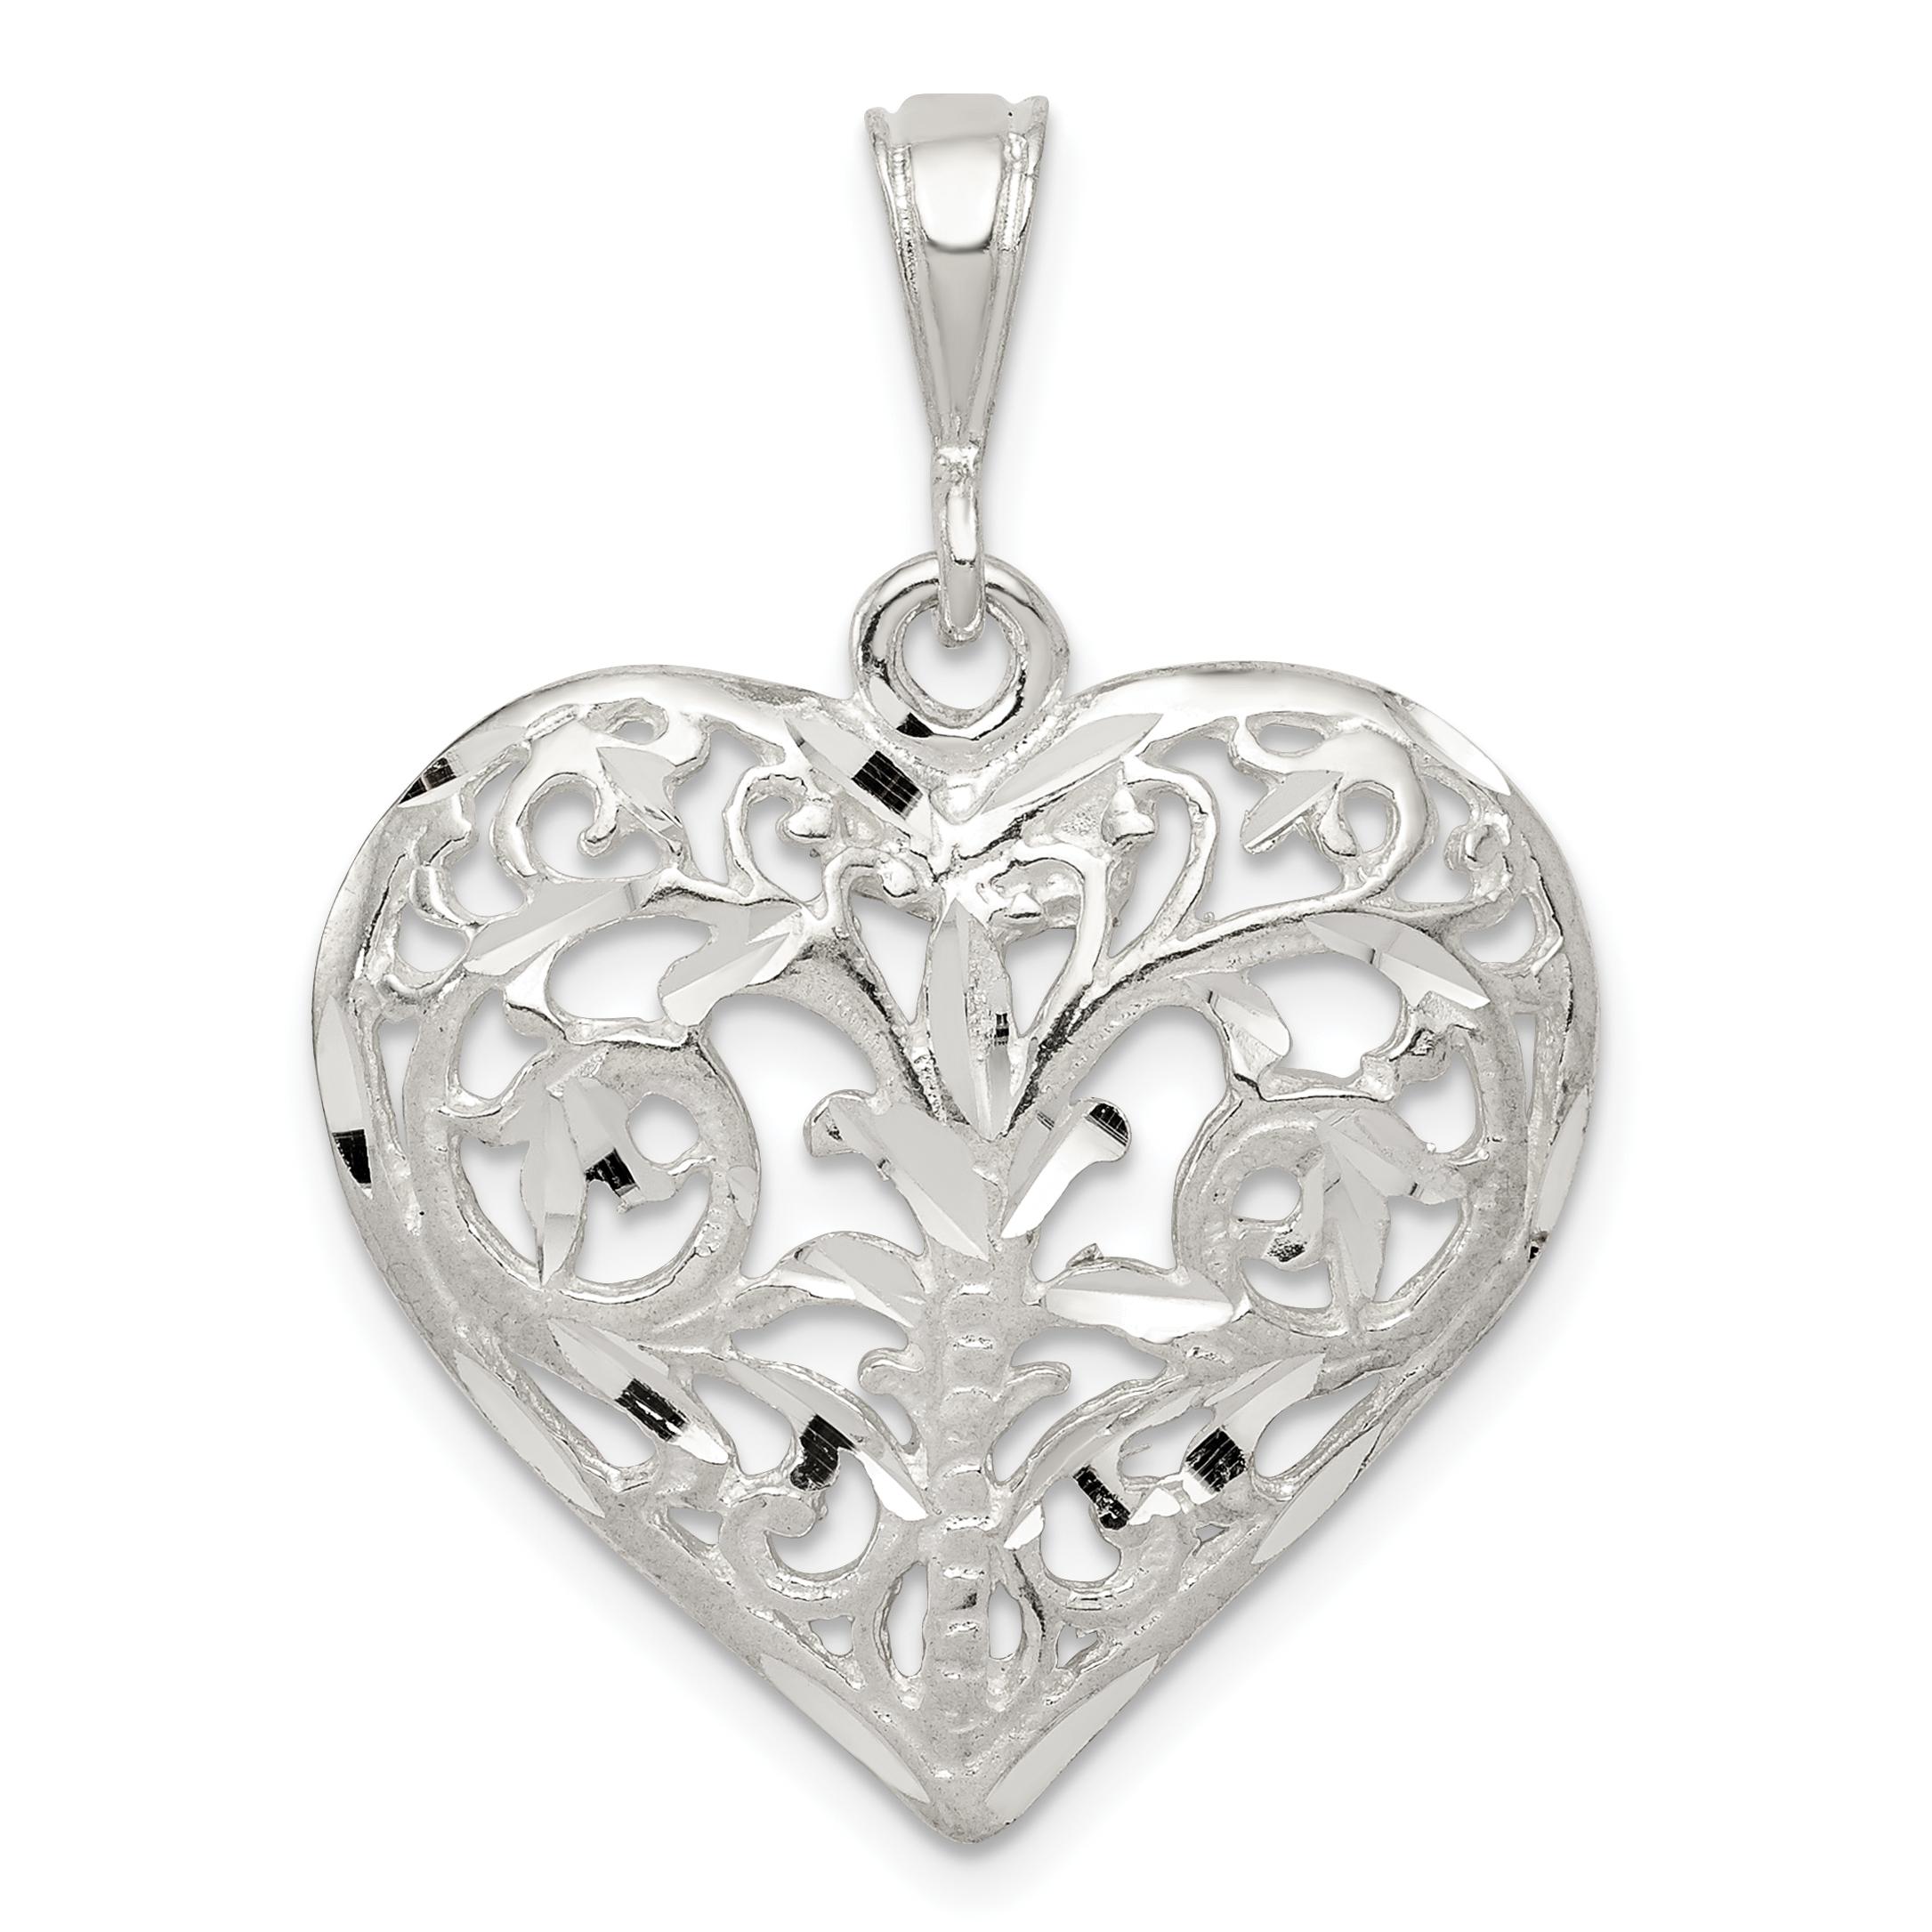 925 Sterling Silver Filigree Heart Pendant Charm Necklace Love Fine Jewelry Gifts For Women For Her - image 2 de 2